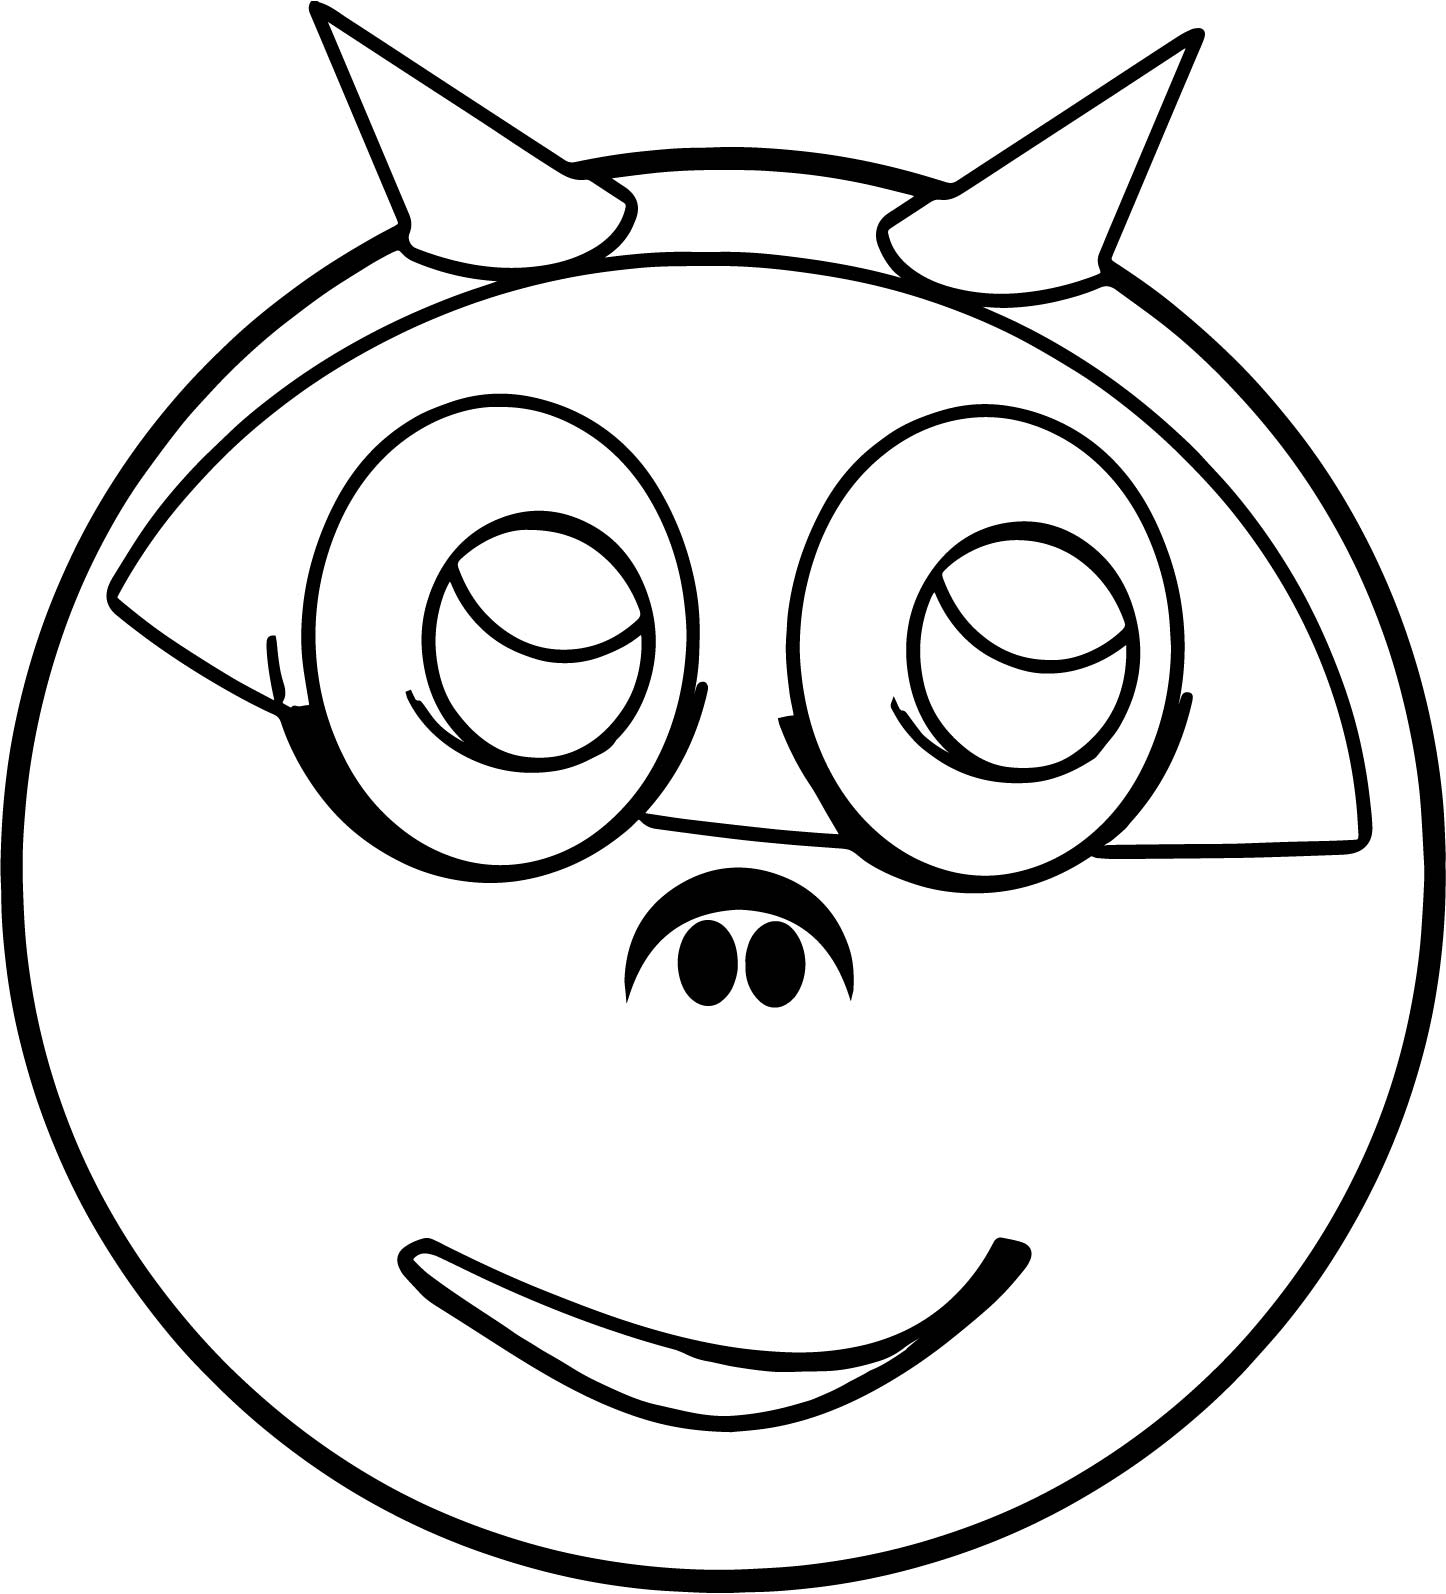 Devil horns smiley emology emoticon coloring page for Devil coloring pages